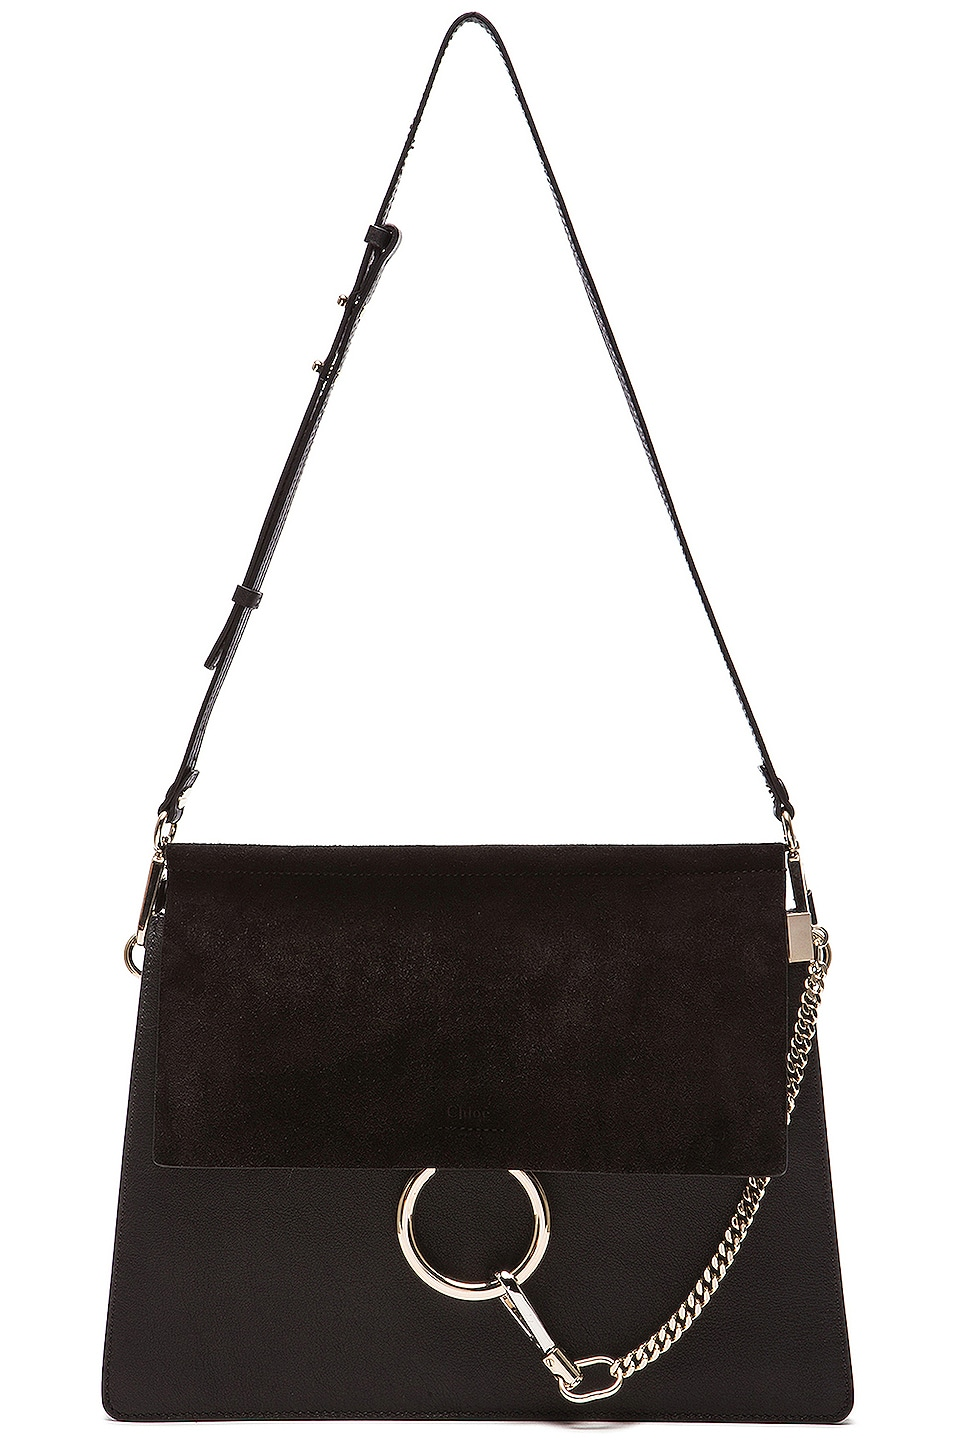 Image 6 of Chloe Medium Faye Bag in Black